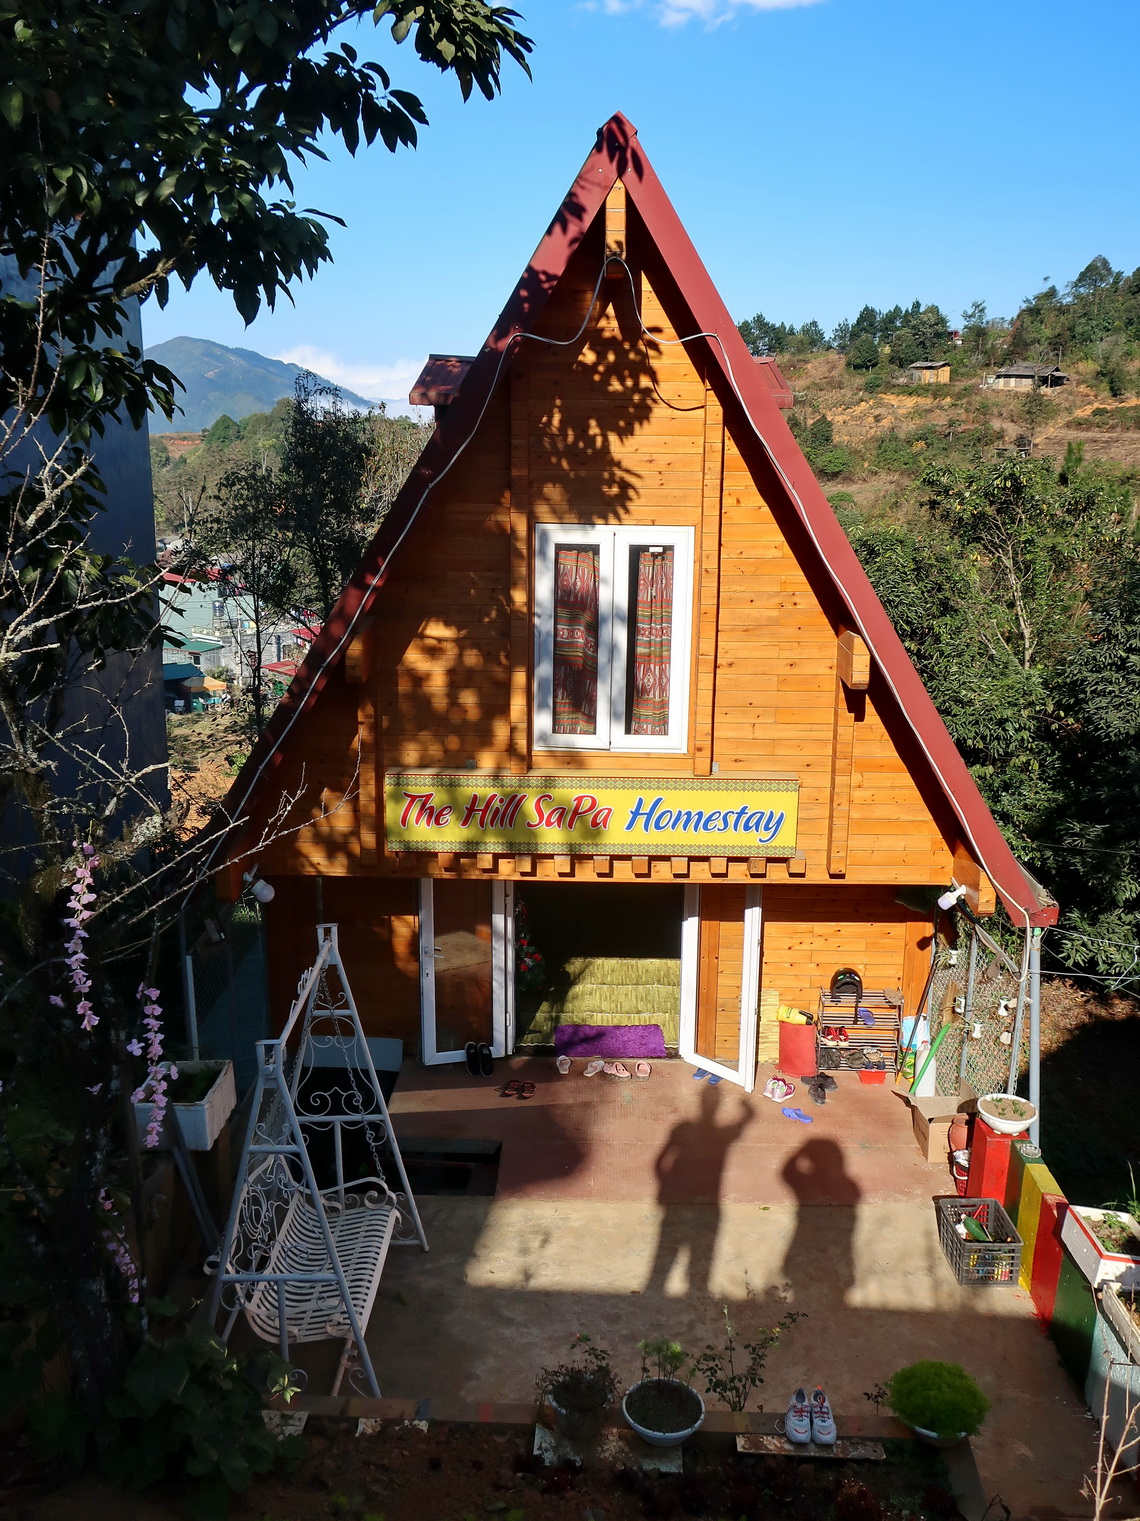 Our cozy home in Sapa - The Hill Sapa Homestay